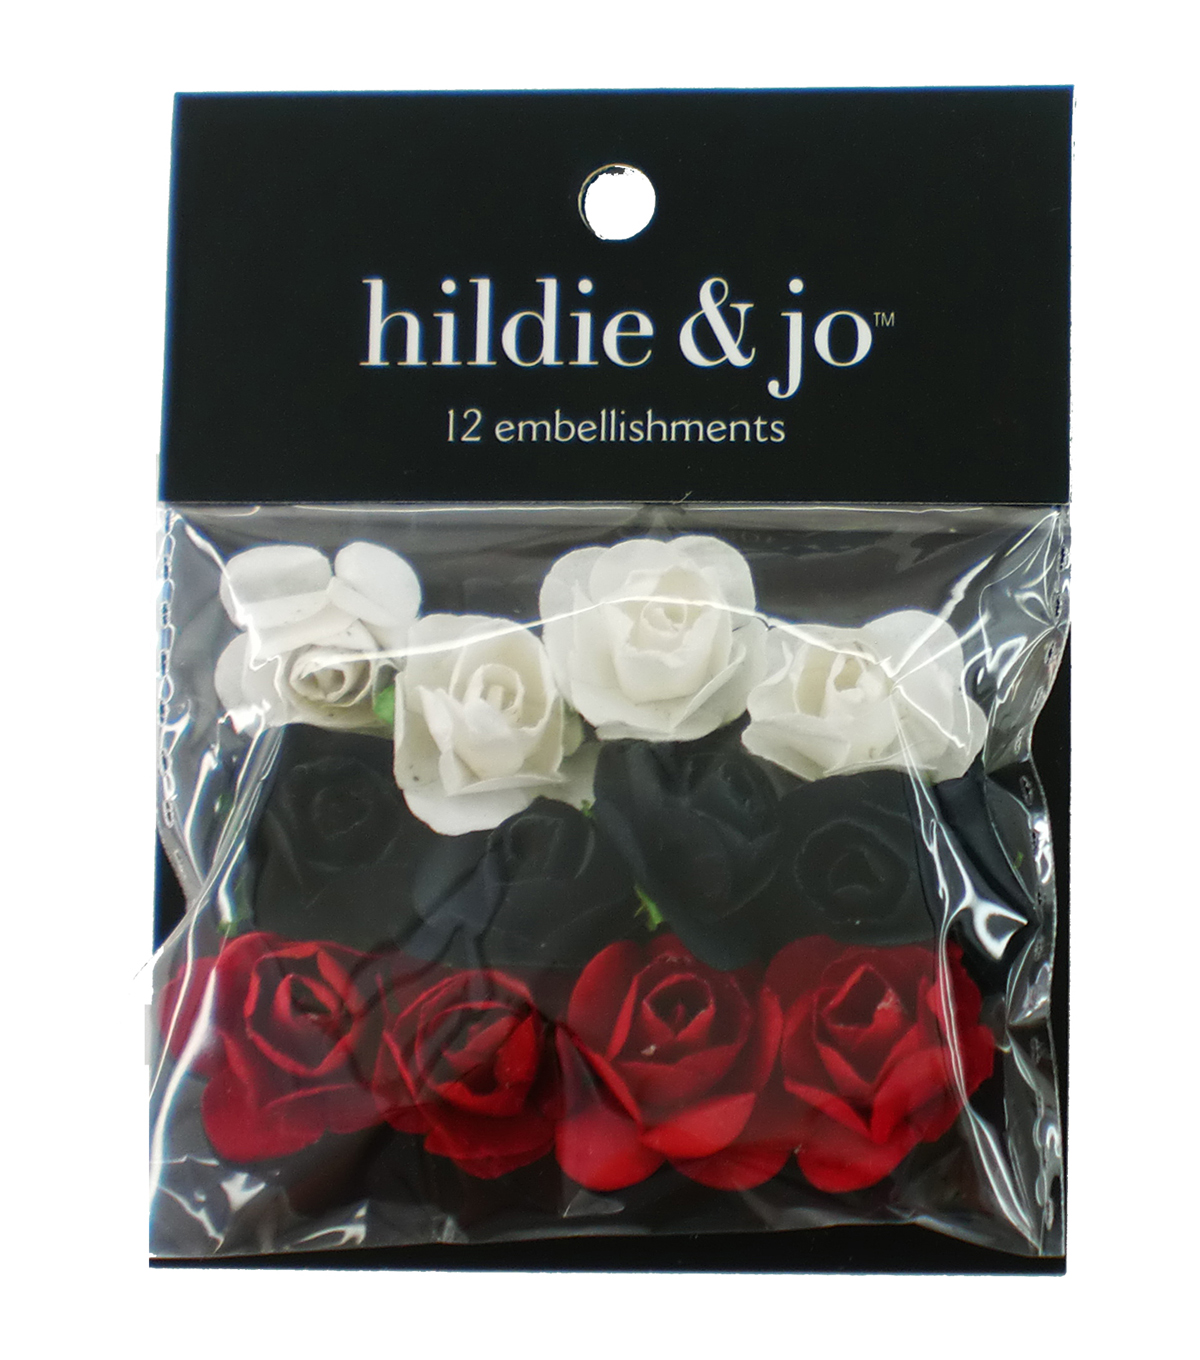 hildie & jo 12 pk Mini Rose Embellishments-White, Black & Red